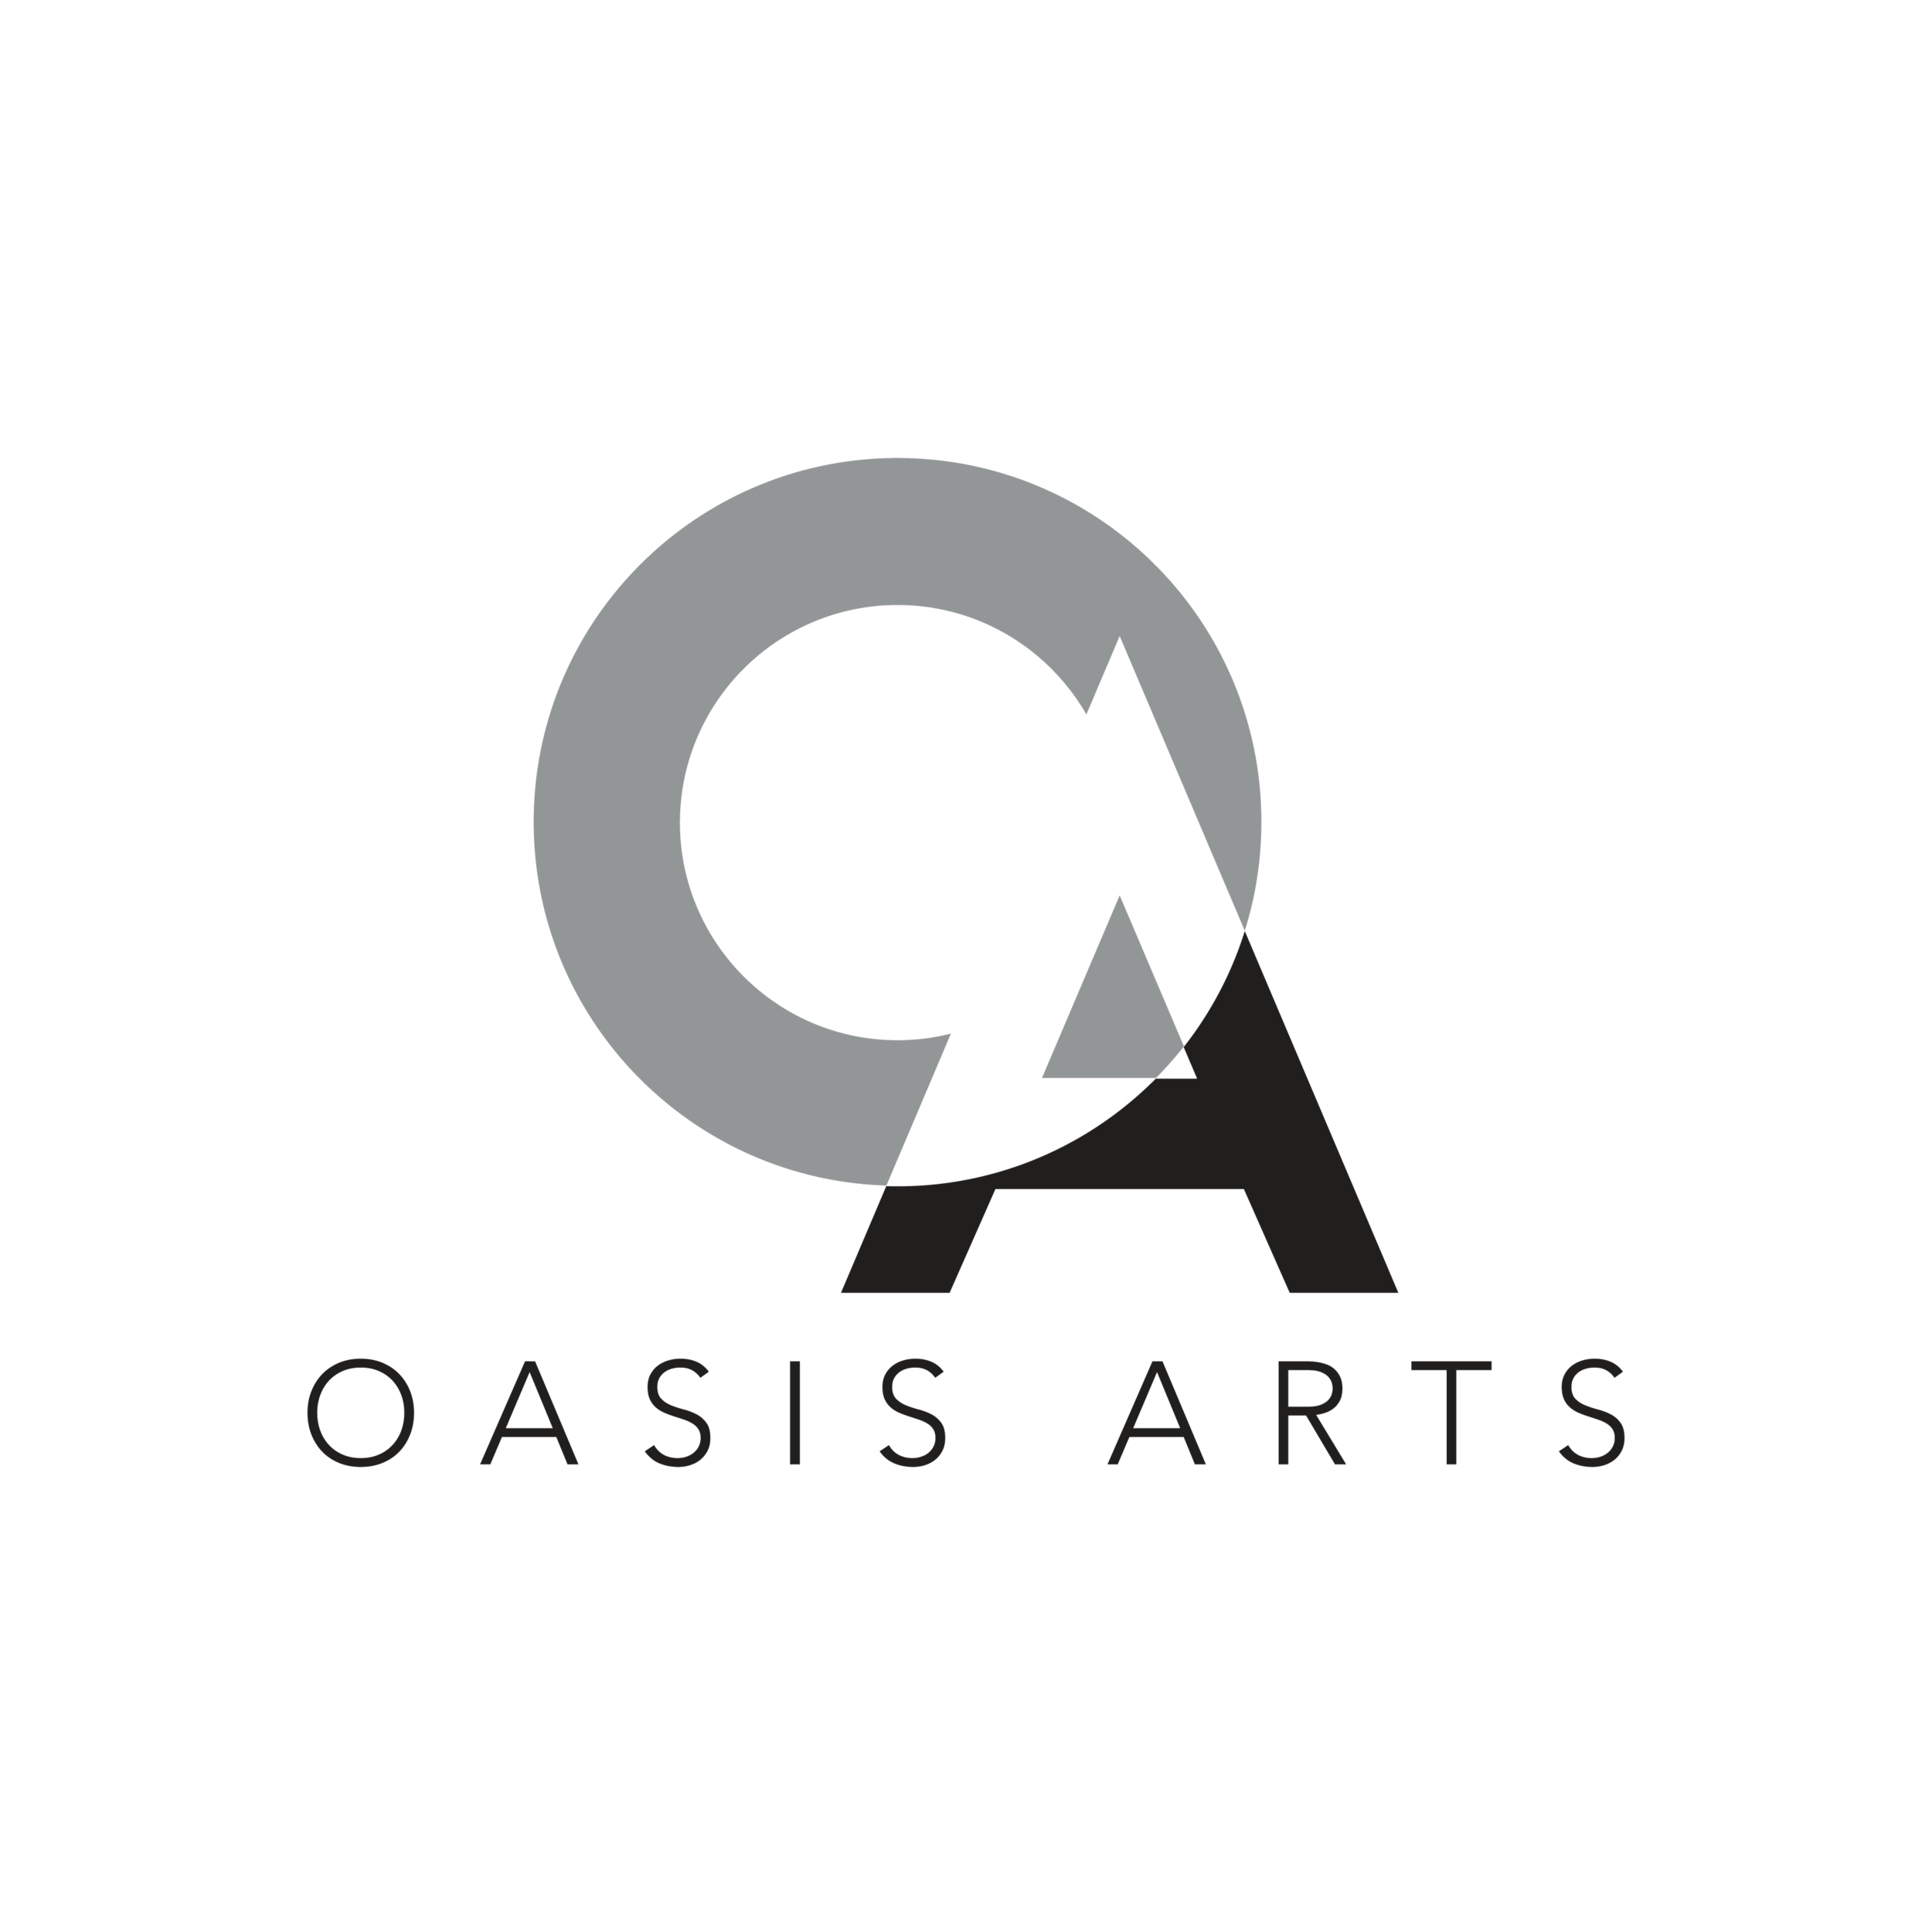 Oasis Arts-01.png